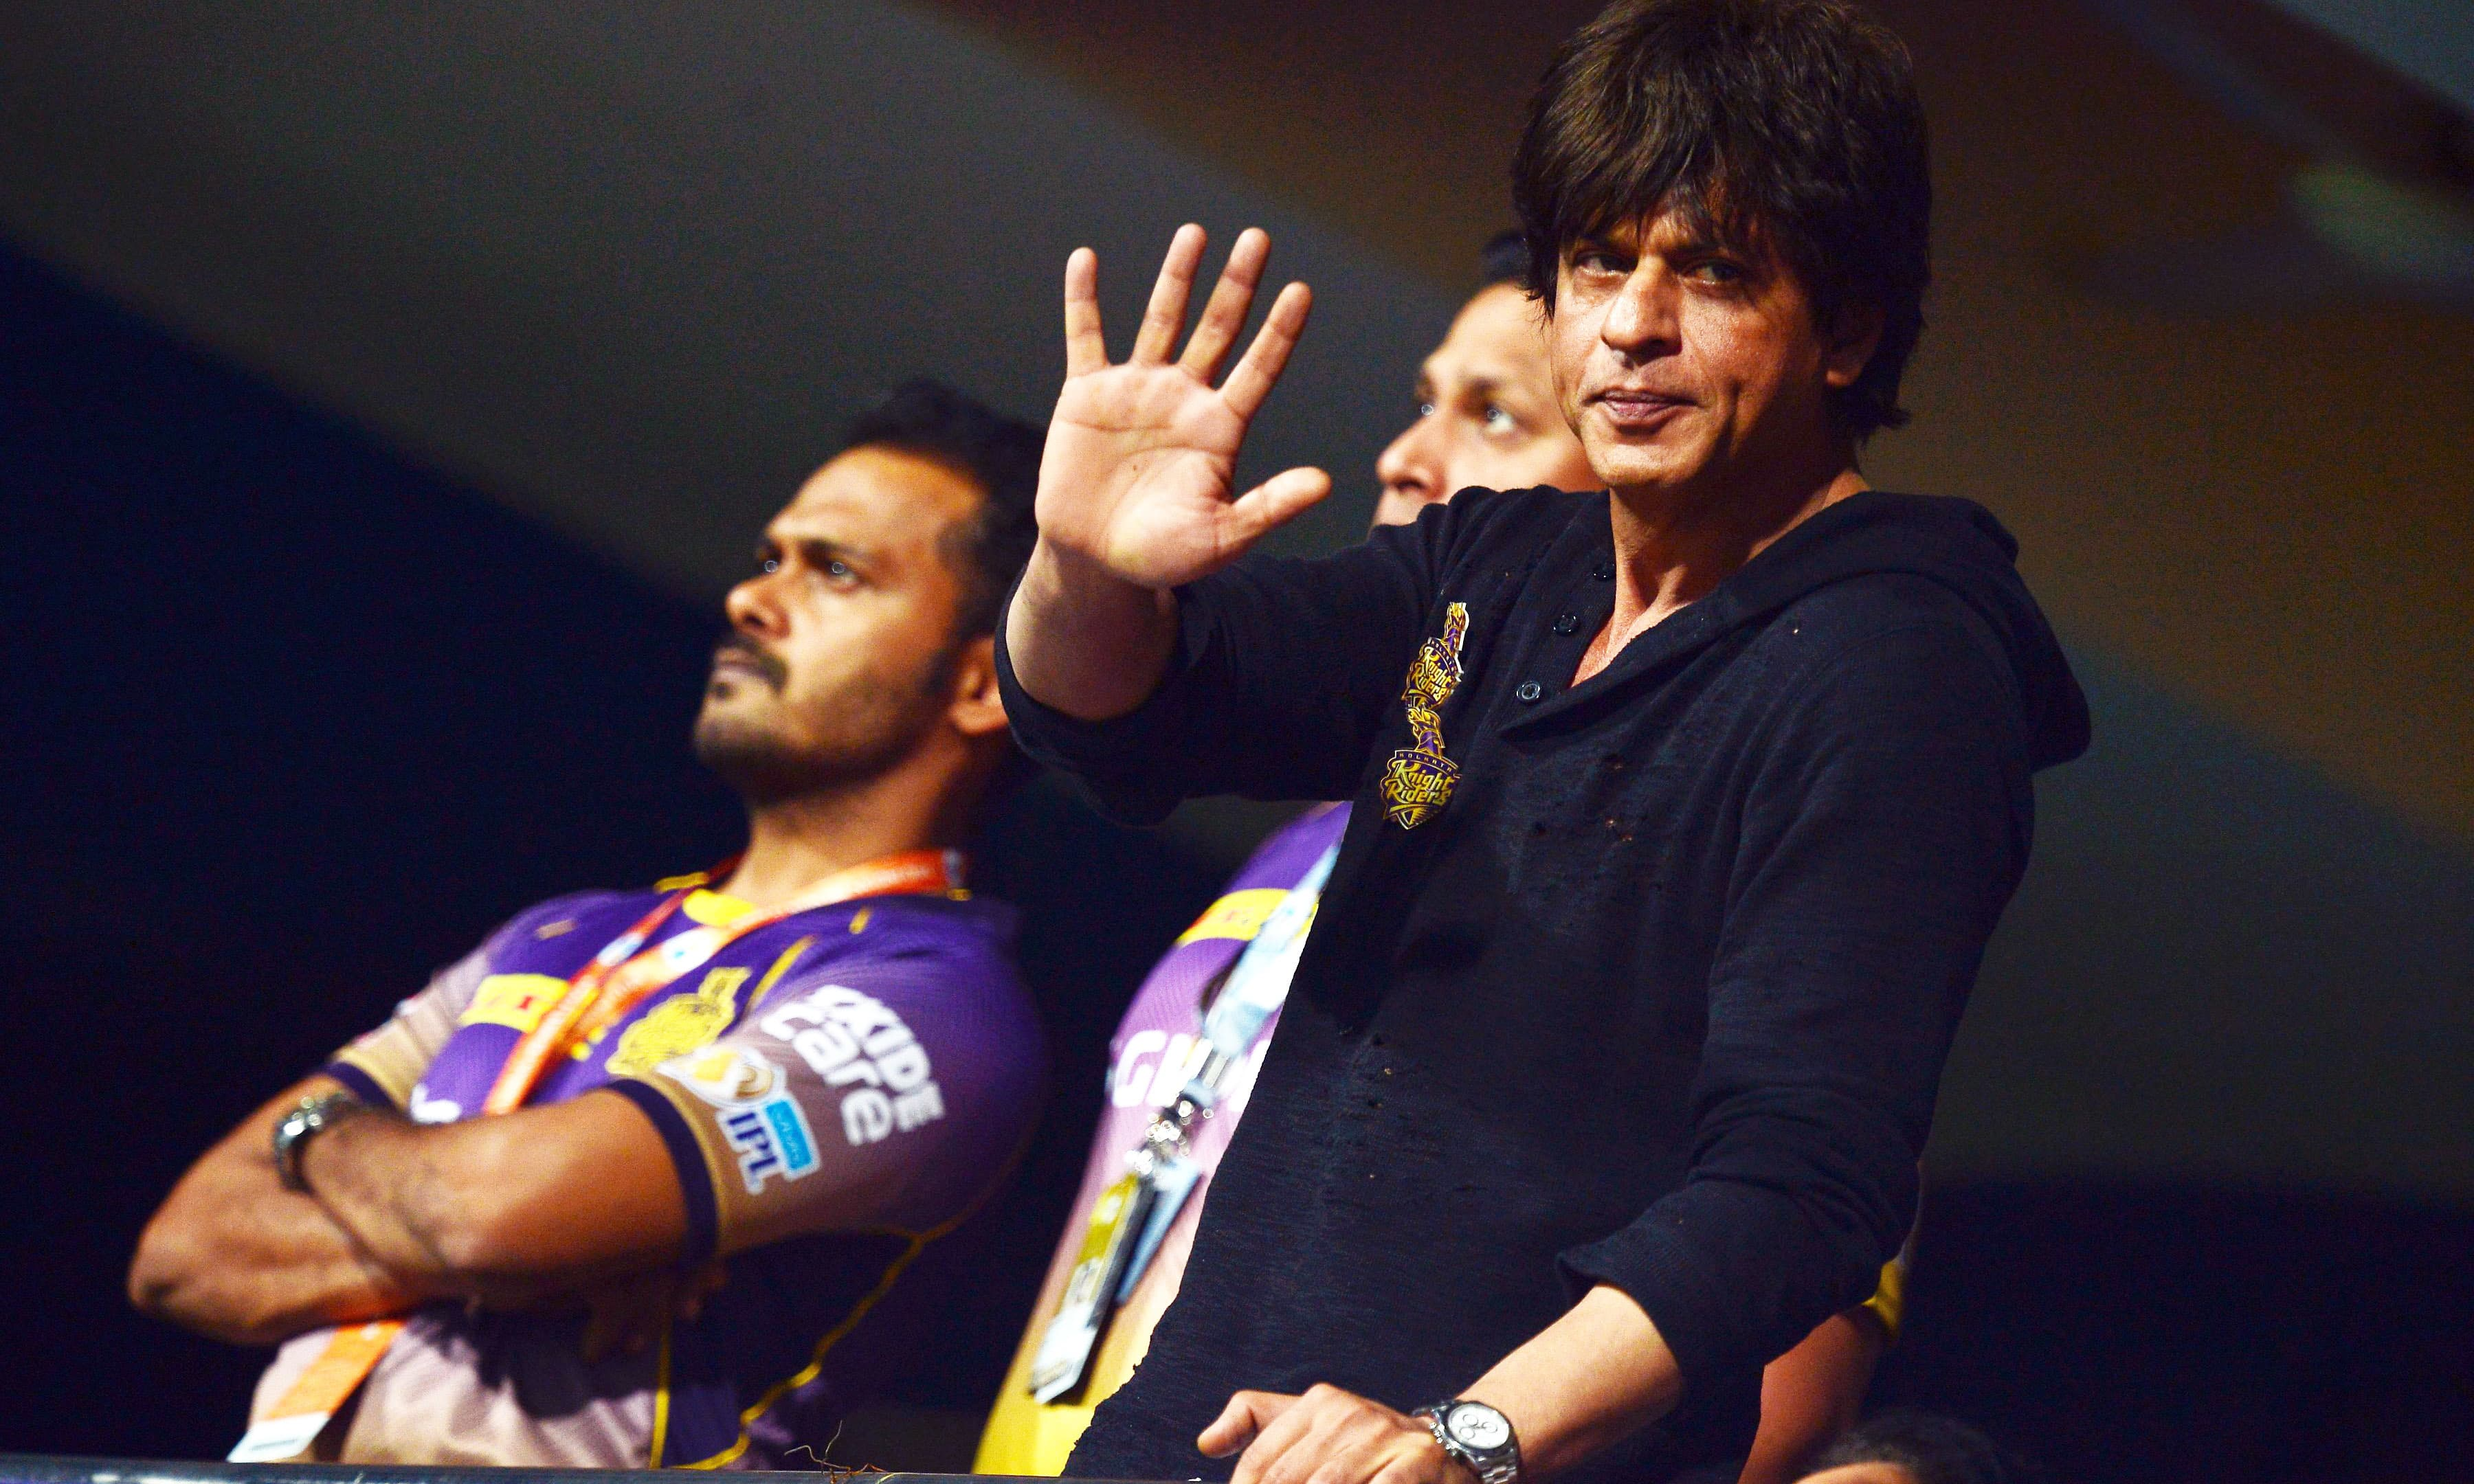 Shah Rukh Khan waves to supporters during the 2017 IPL match. —AFP